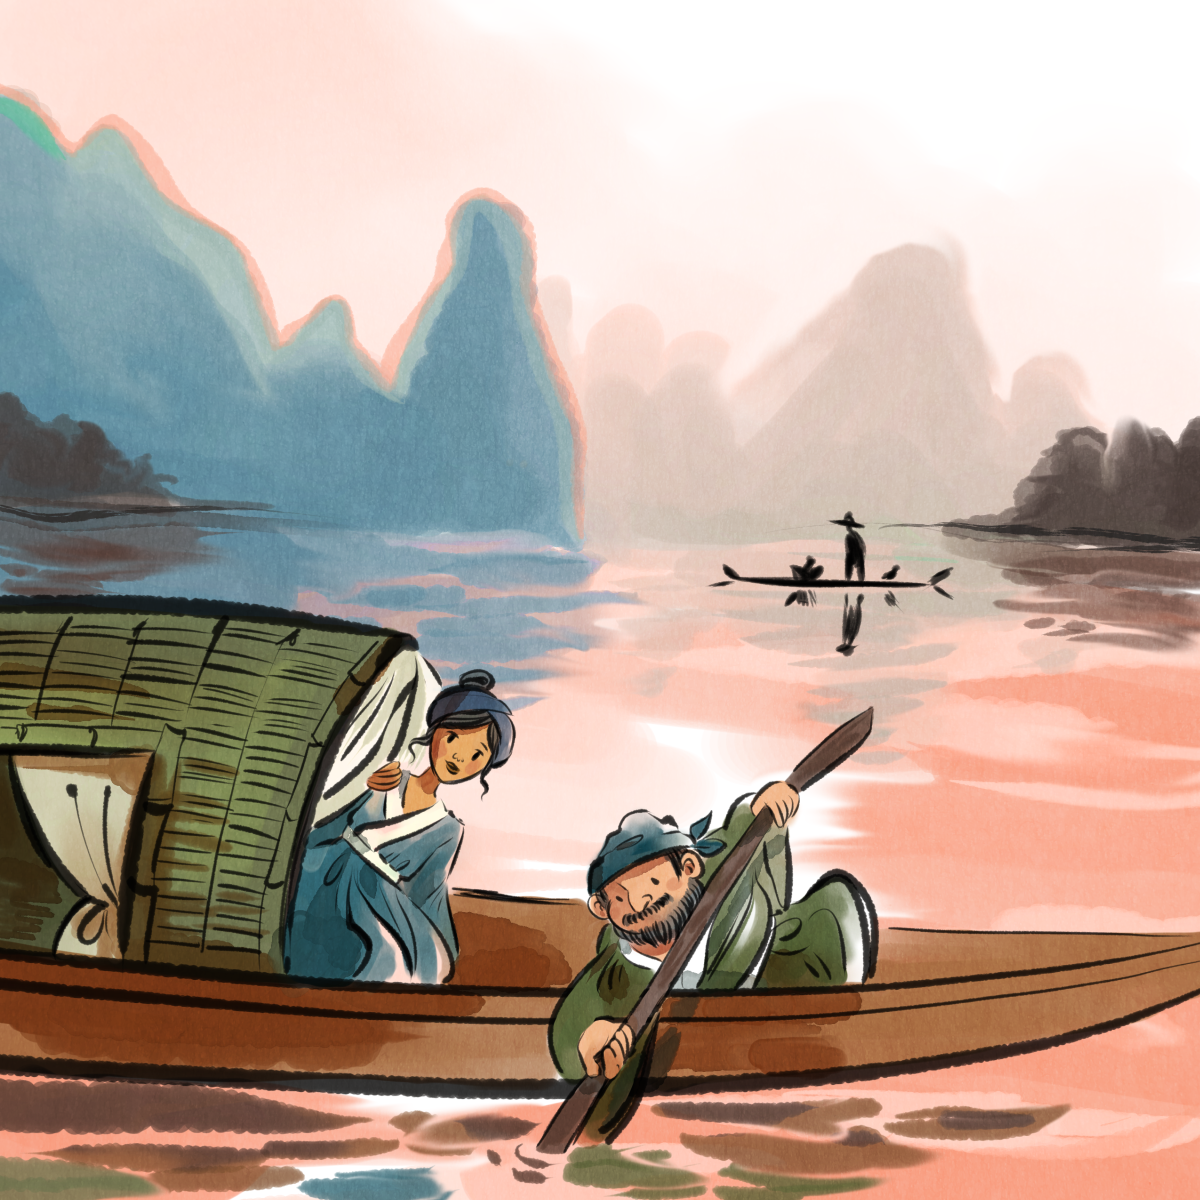 Watercolour style illustration. A Chinese fisher's boat floats on a river with sunset colours lighting up the water. Blue hills fade in the background. Two cartoon characters dressed in hanfu are on the boat.